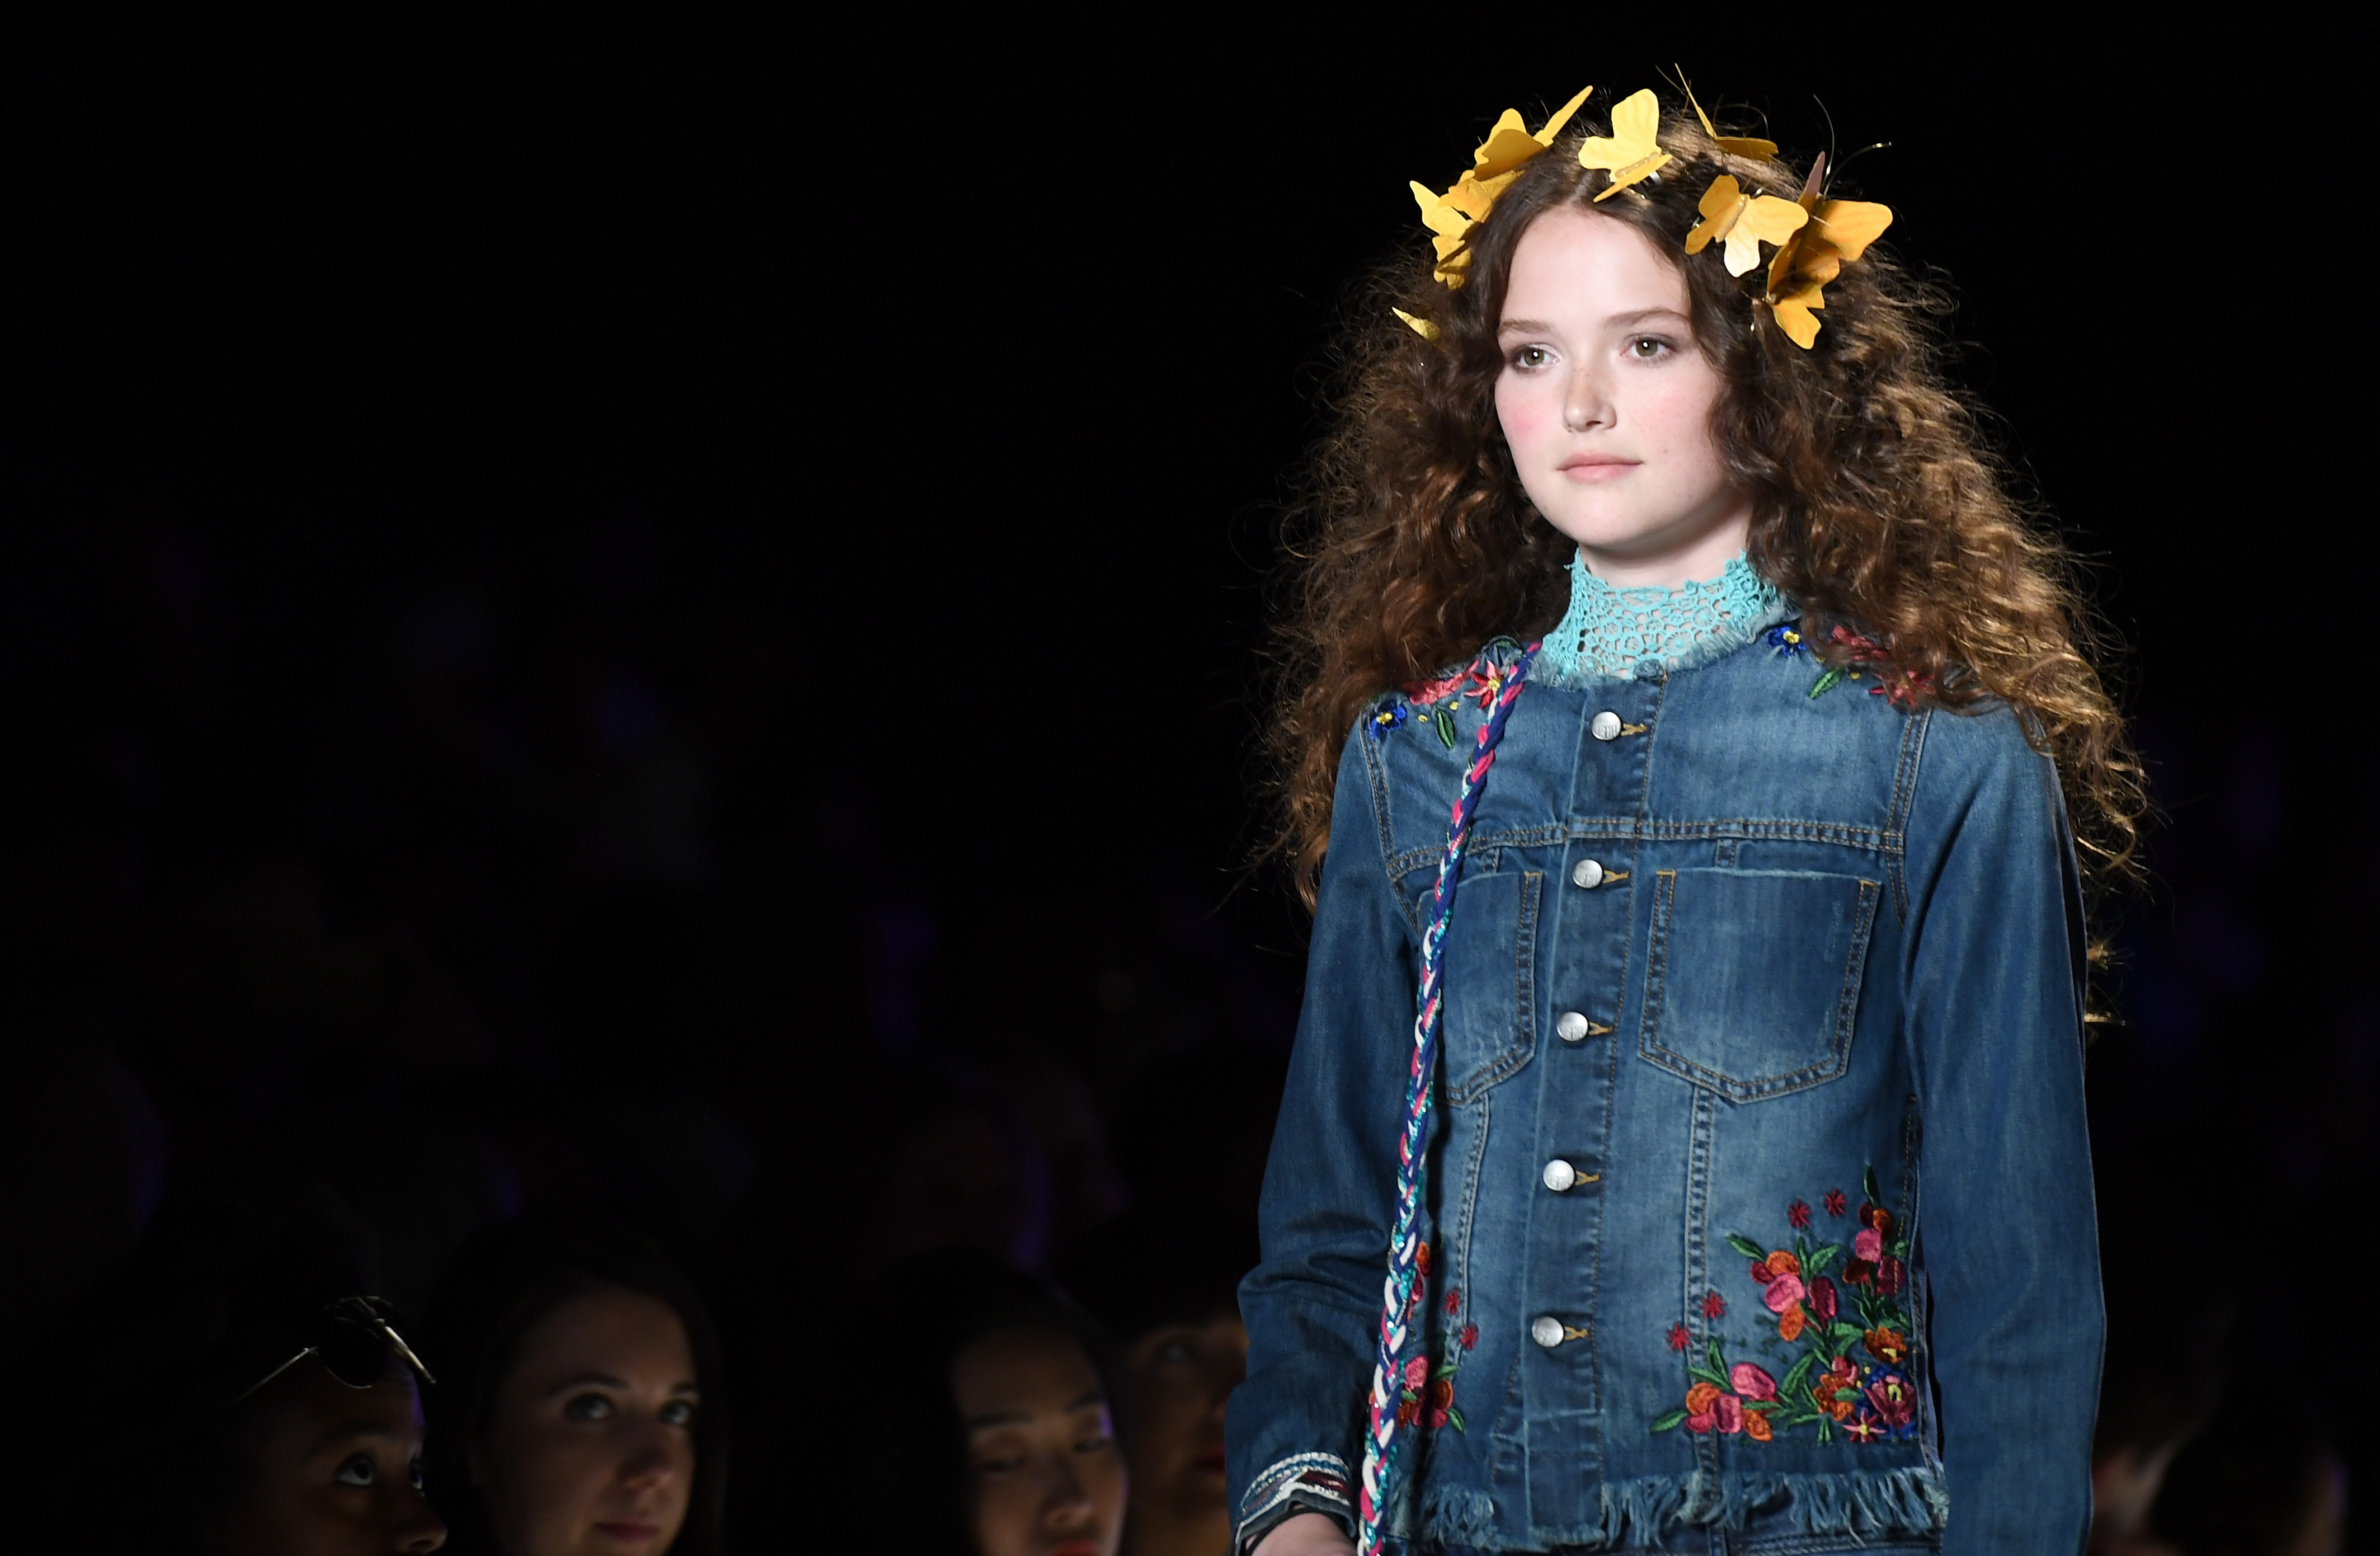 A model displays the fashion of Desigual during New York Fashion Week on September 8, 2016 / AFP / ANGELA WEISS        (Photo credit should read ANGELA WEISS/AFP/Getty Images)